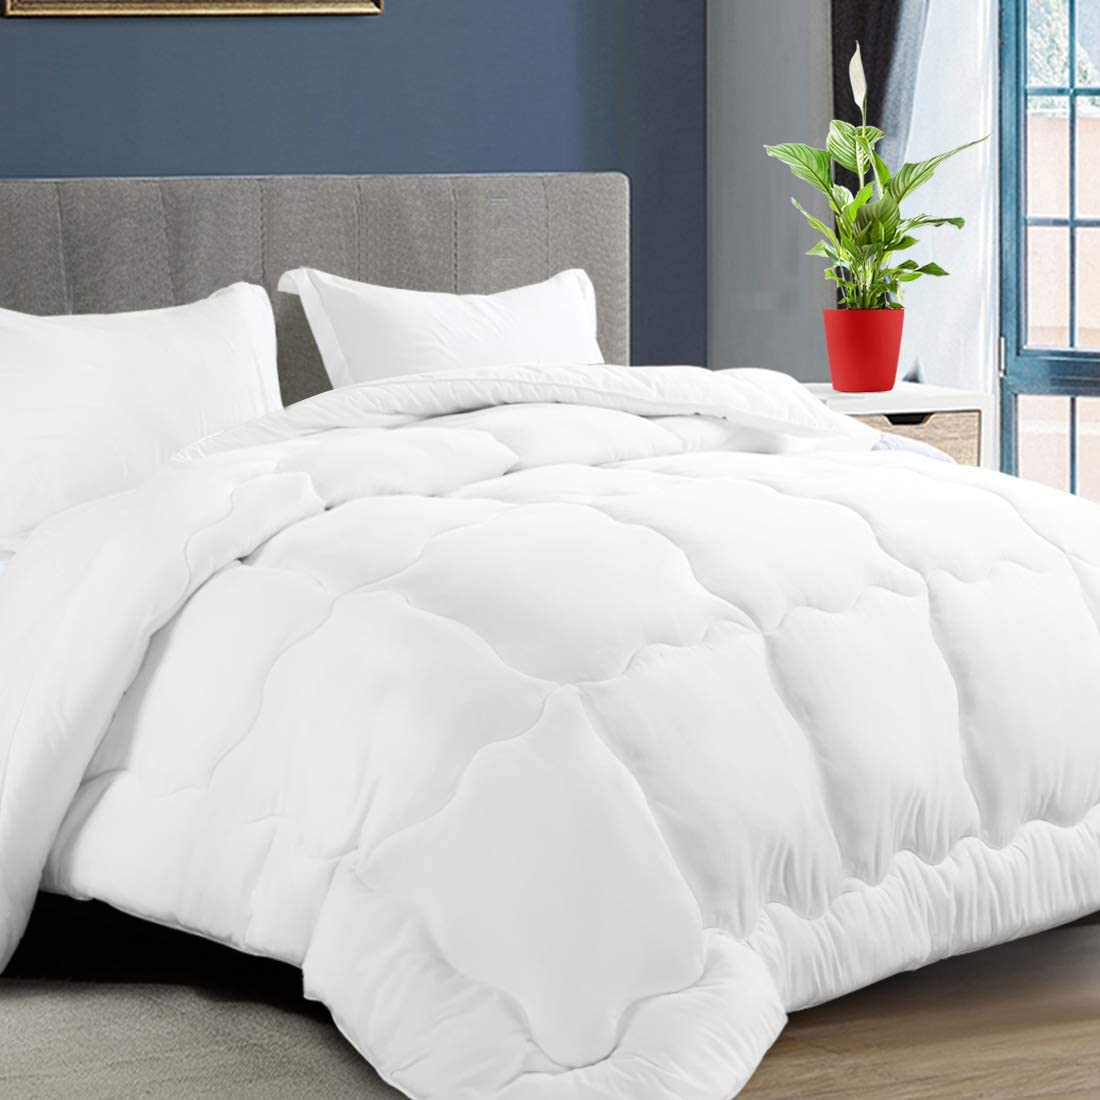 KARRISM All Season Down Alternative Queen Comforter, Summer Cooling Comforter Ultra Soft Quilted Duvet Insert with Corner Tabs, Wavy Box Stitched, Luxury Fluffy Lightweight (White, 88 x 88 inch)